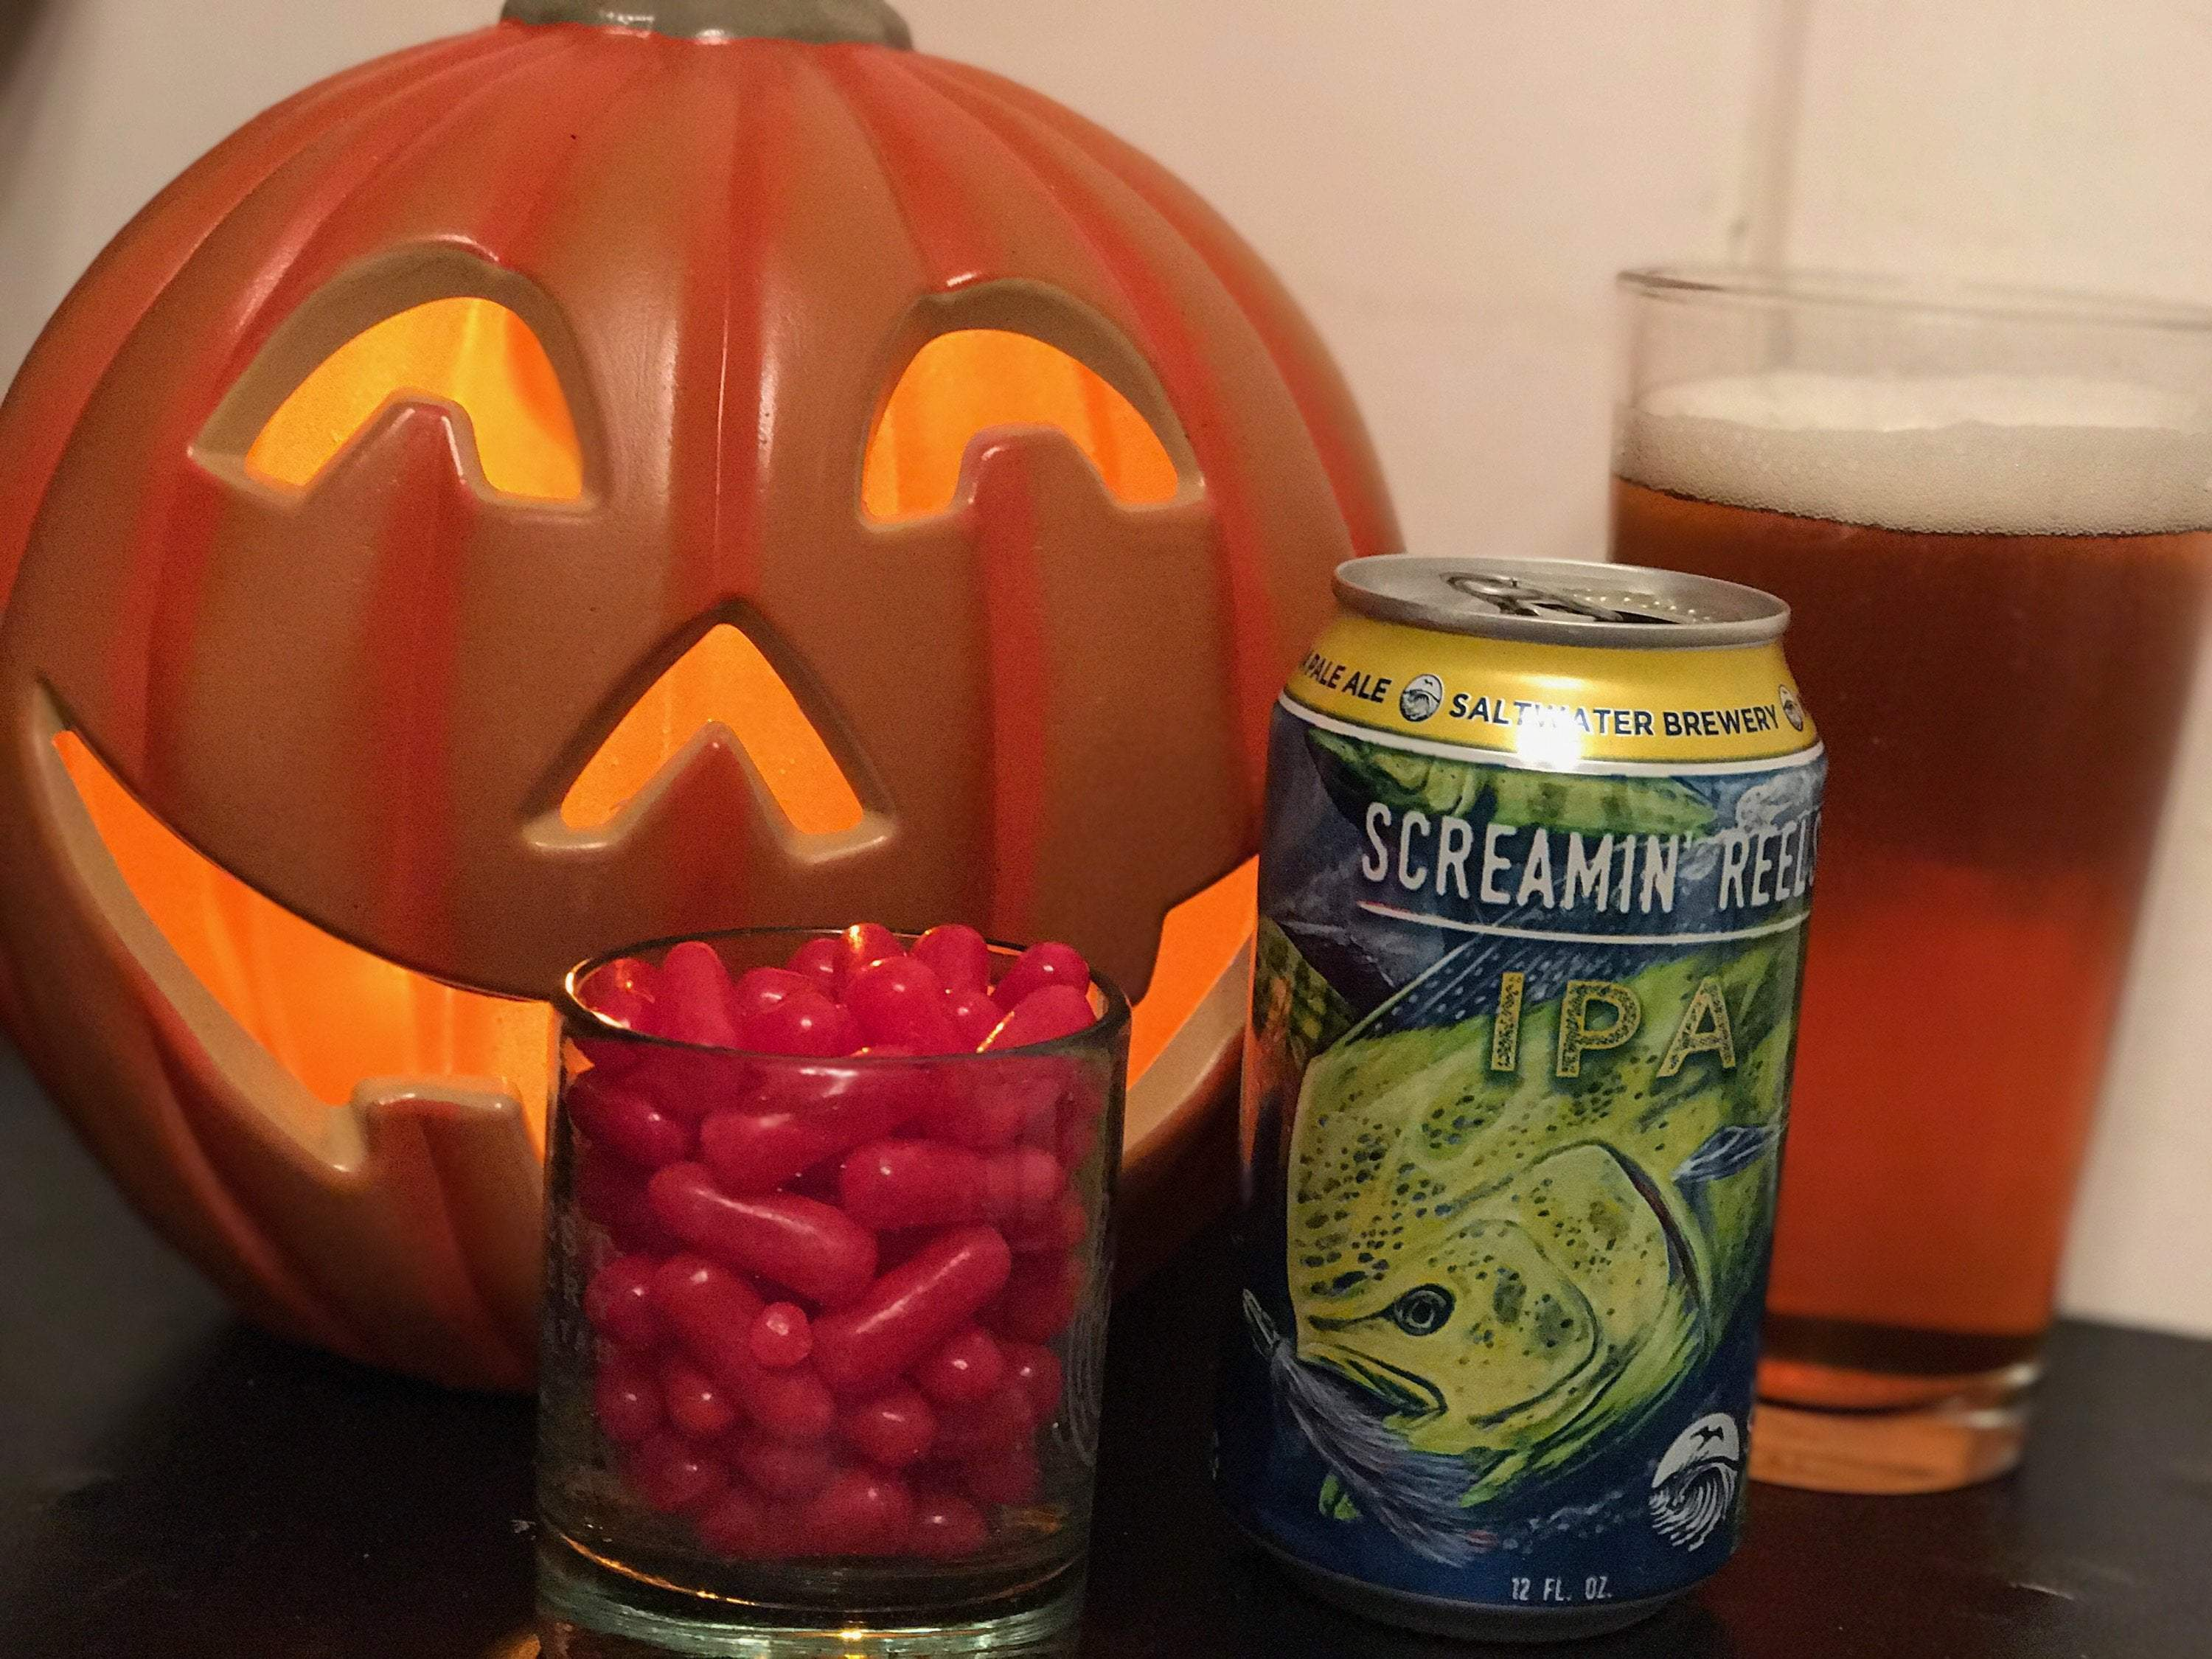 October 26th - What's Brewing at Saltwater Brewery